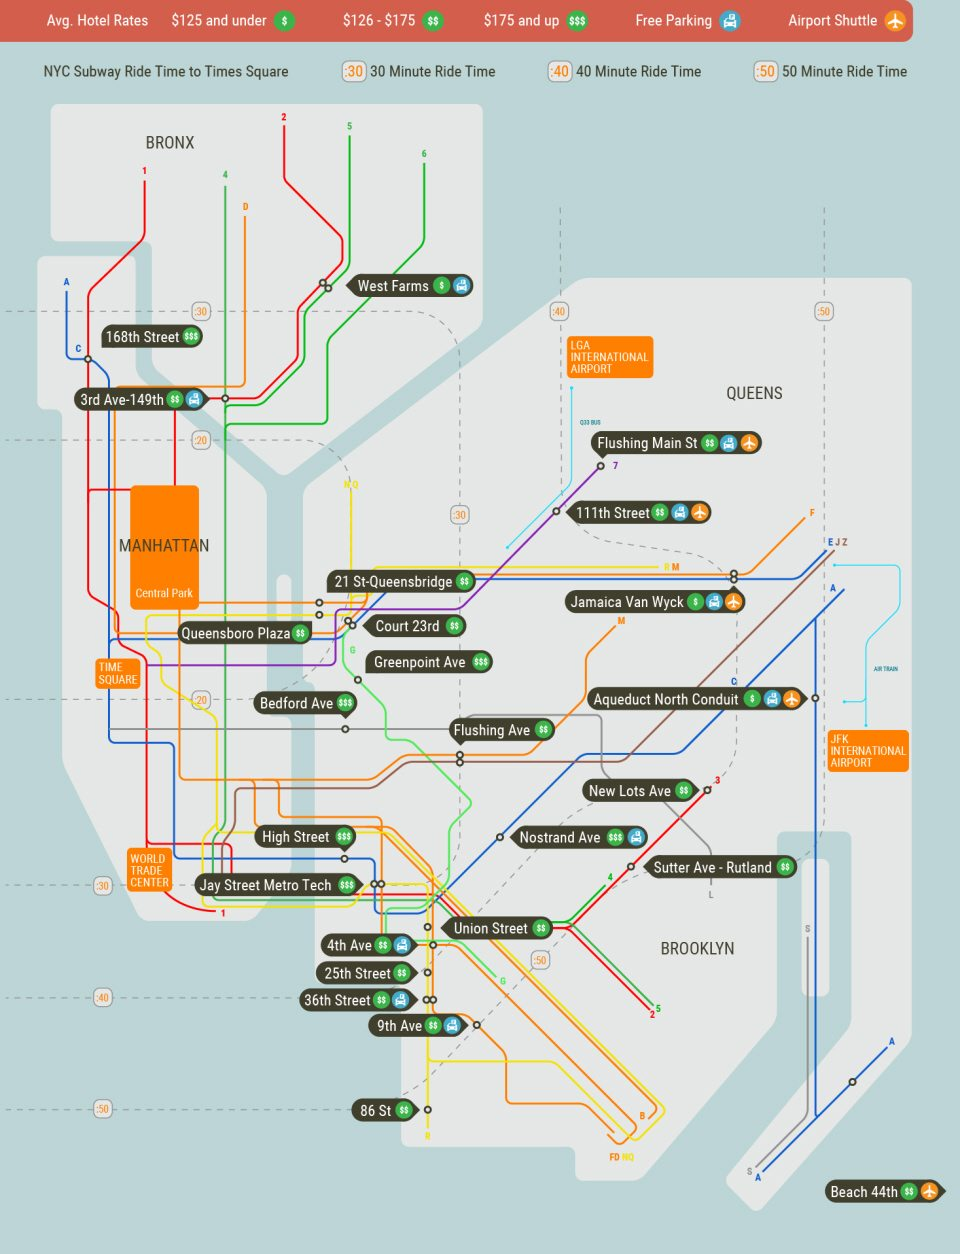 Nyc Subway Map Over Street Map.Map Of Brooklyn Bronx Queens Hotels Near Nyc Subway